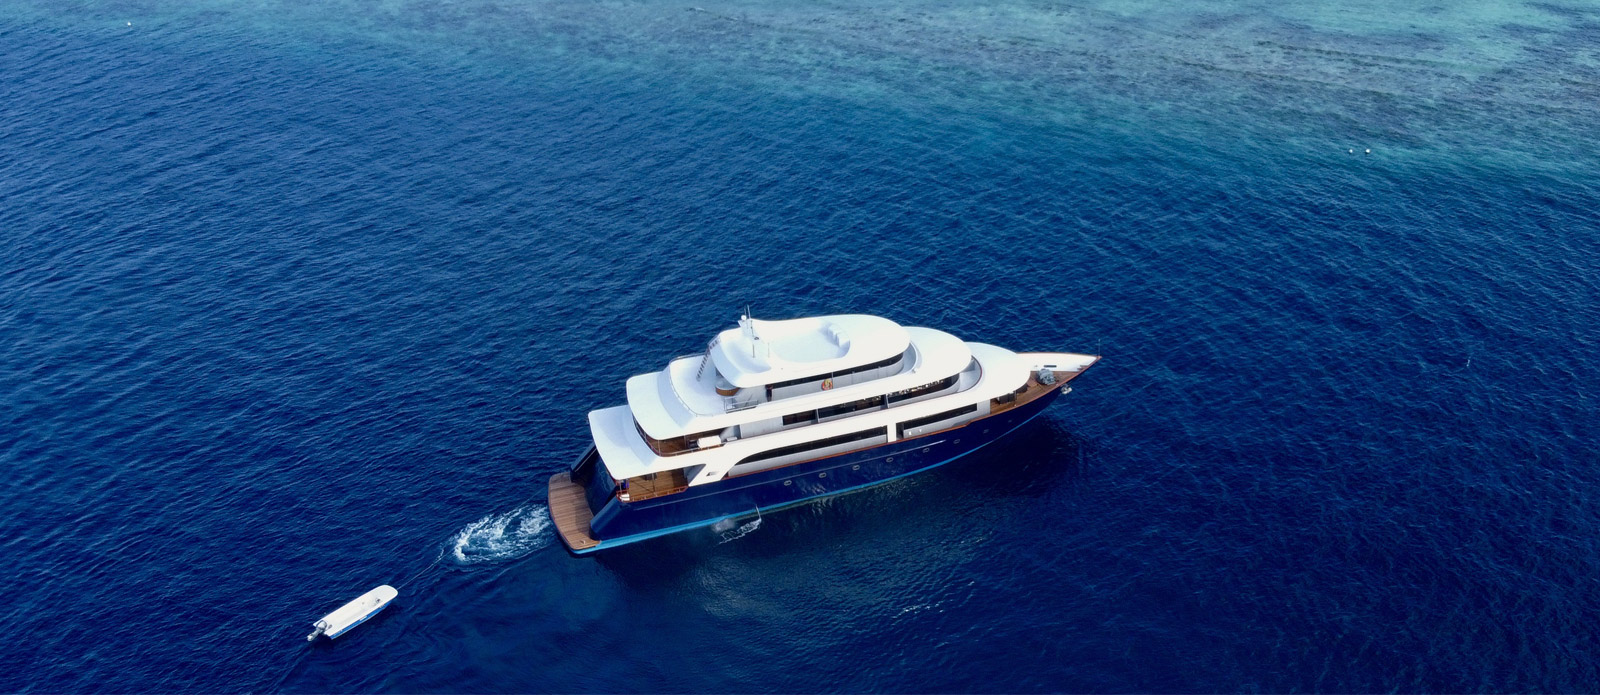 Safira-Luxury-Yacht-For-Sale-Exterior-1